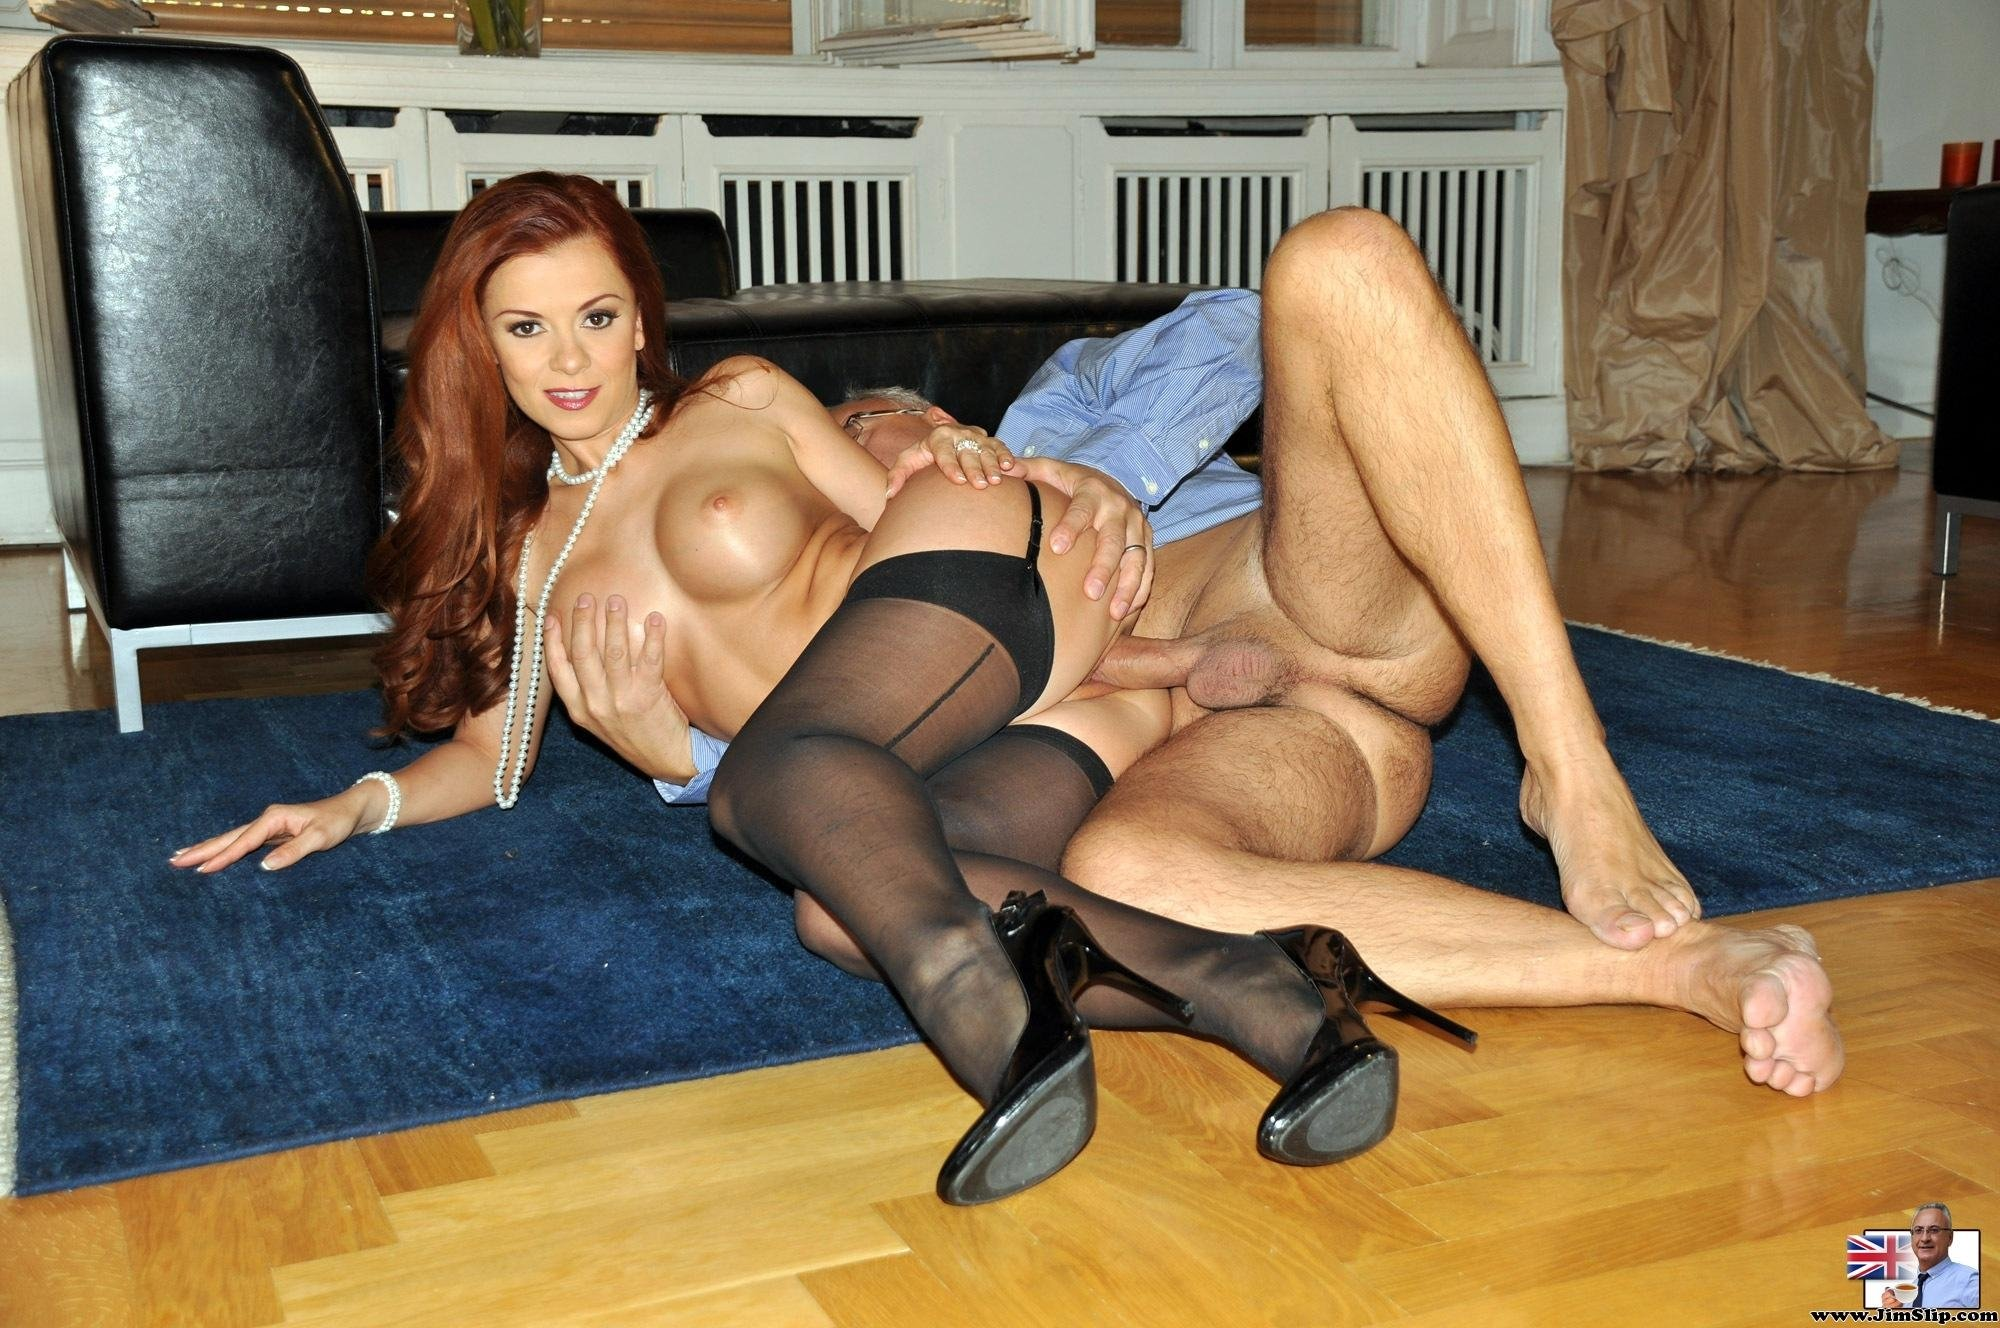 Interracial housewife pictures